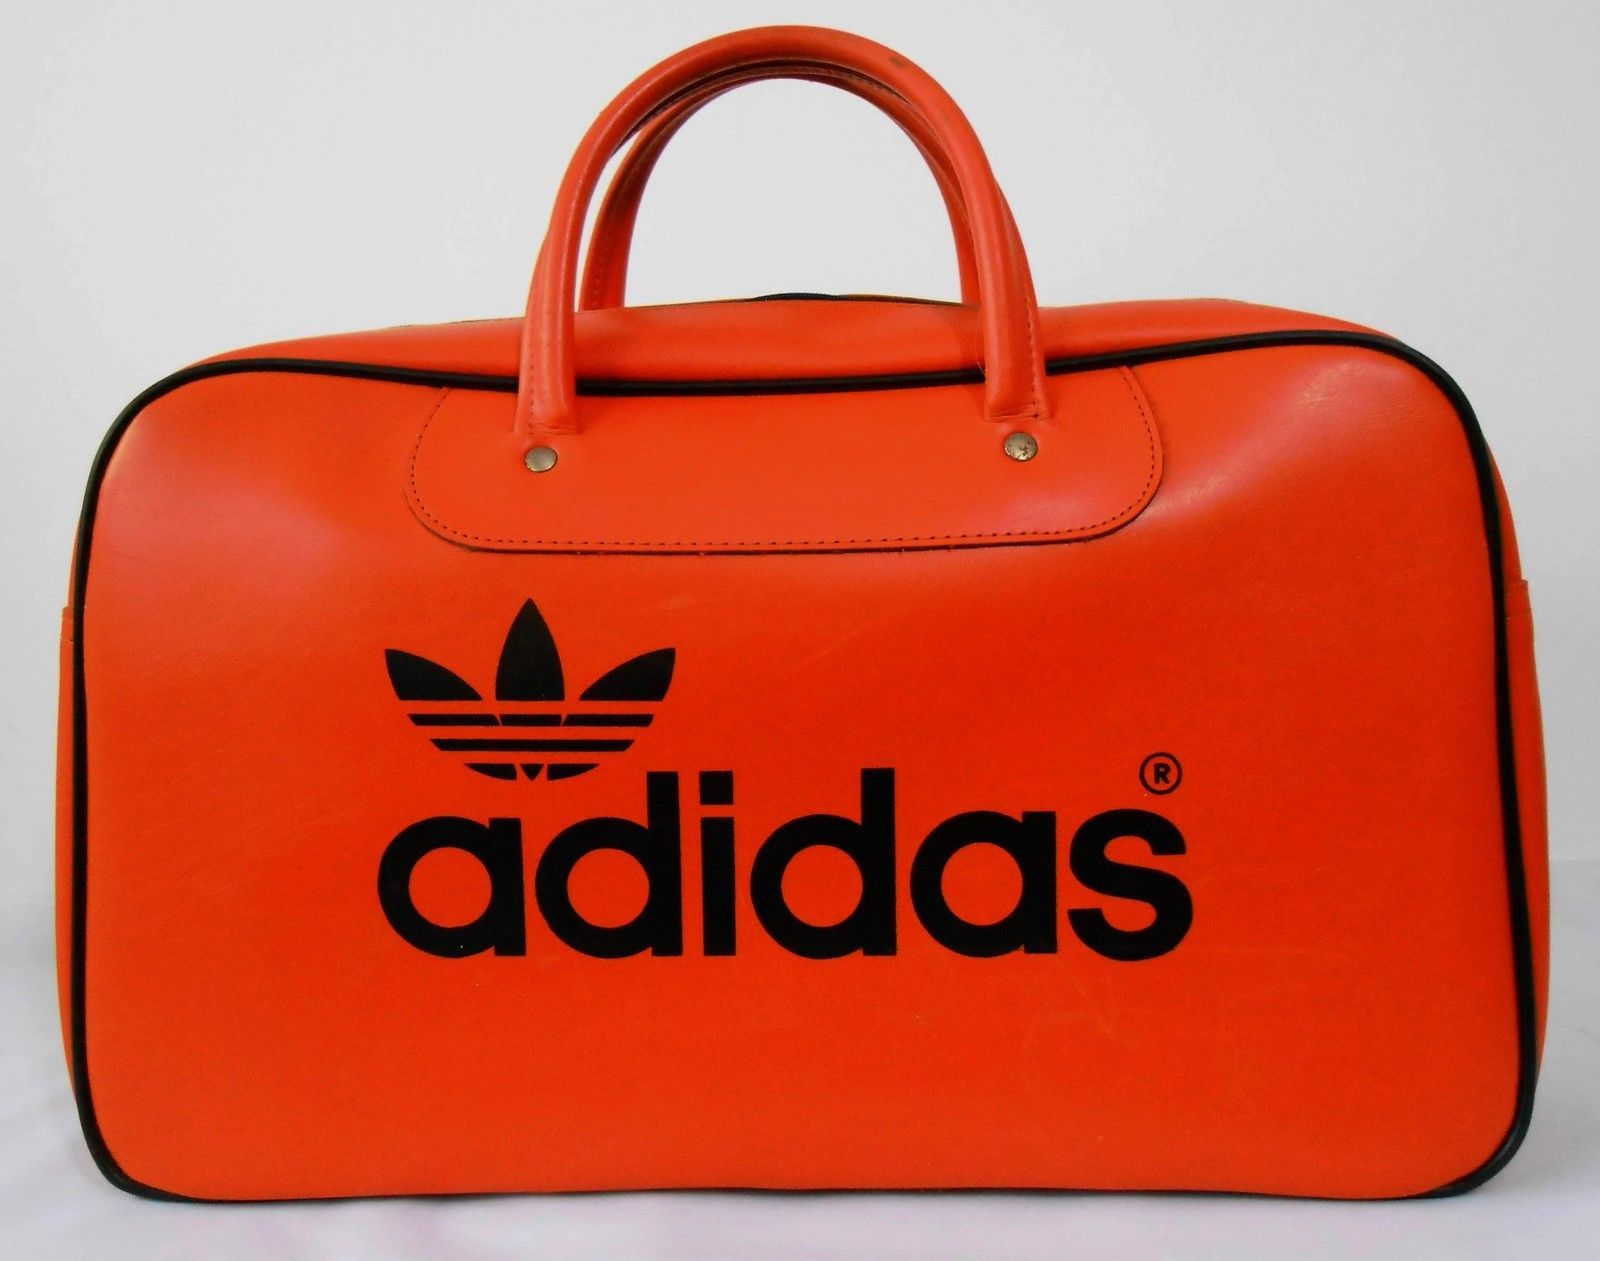 Peter Northern Bag Archive Vintage 70s Adidas Black qvOcUEfp